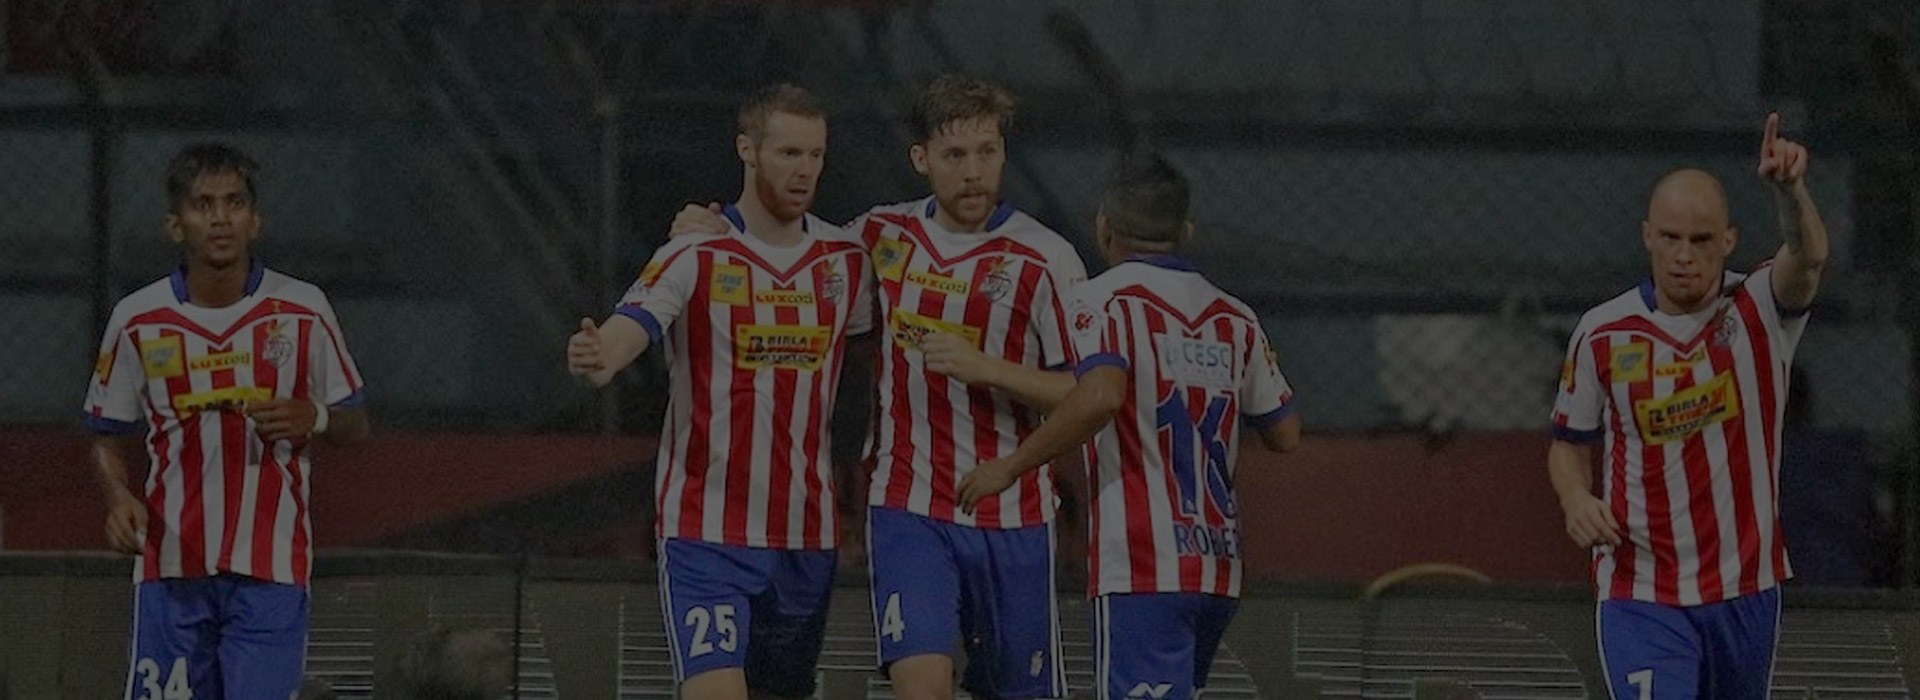 Formed 'ATK', Kolkata's premium football team, in association with Atletico De Madrid.